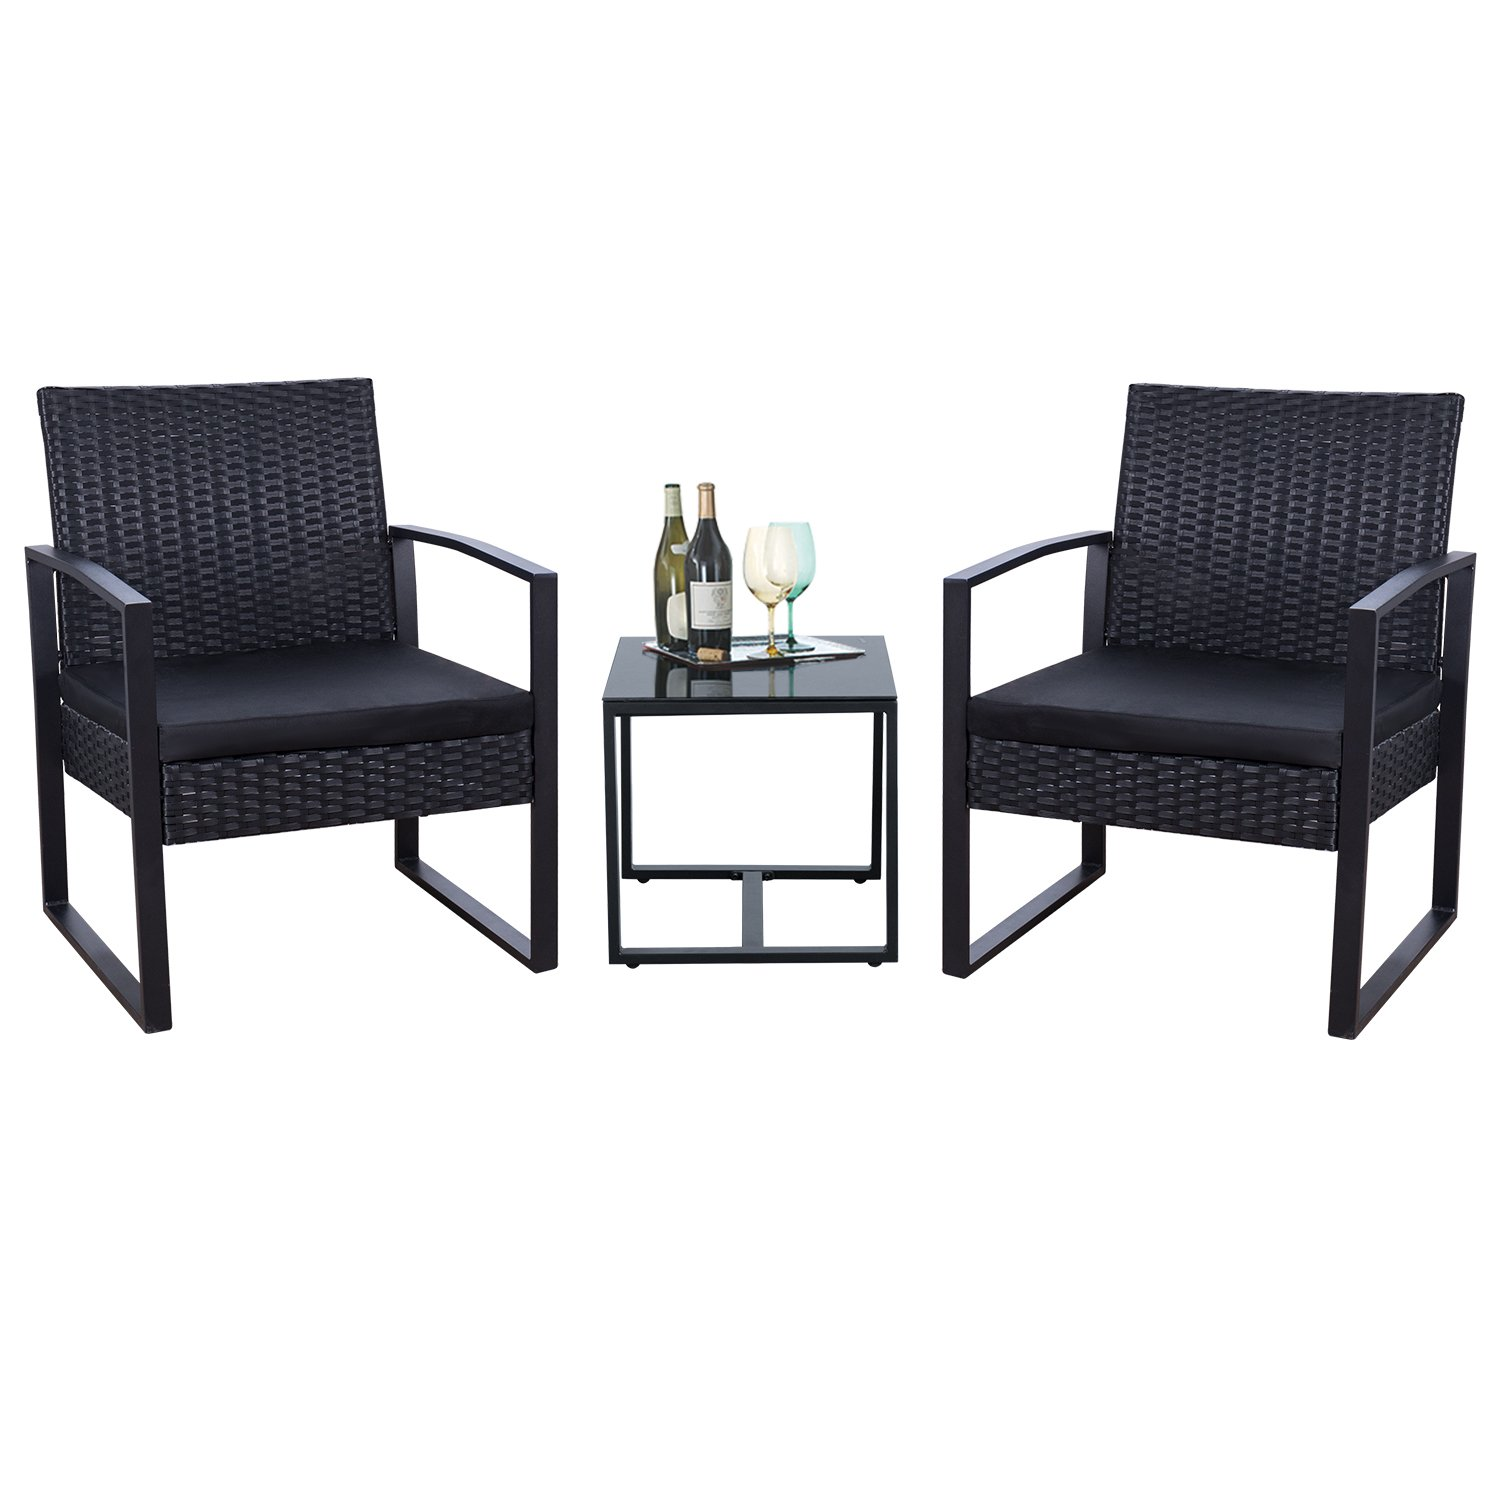 Amazon.com Flamaker 3 Pieces Patio Set Outdoor Wicker Patio Furniture Sets Modern Bistro Set Rattan Chair Conversation Sets with Coffee Table (Black) ...  sc 1 st  Amazon.com & Amazon.com: Flamaker 3 Pieces Patio Set Outdoor Wicker Patio ...